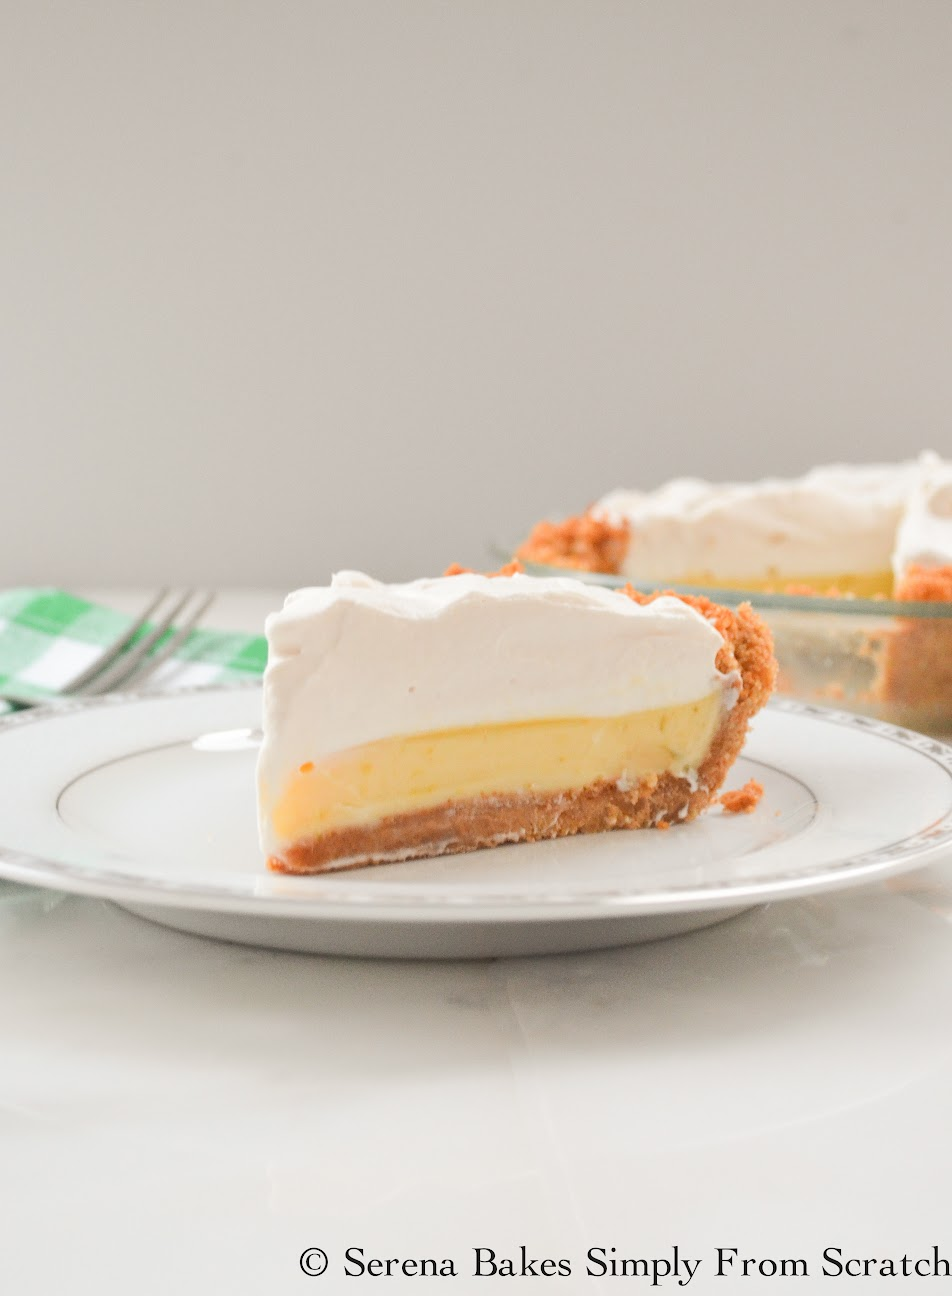 Key Lime Pie is perfect for any occasion. Elegant and easy to make.